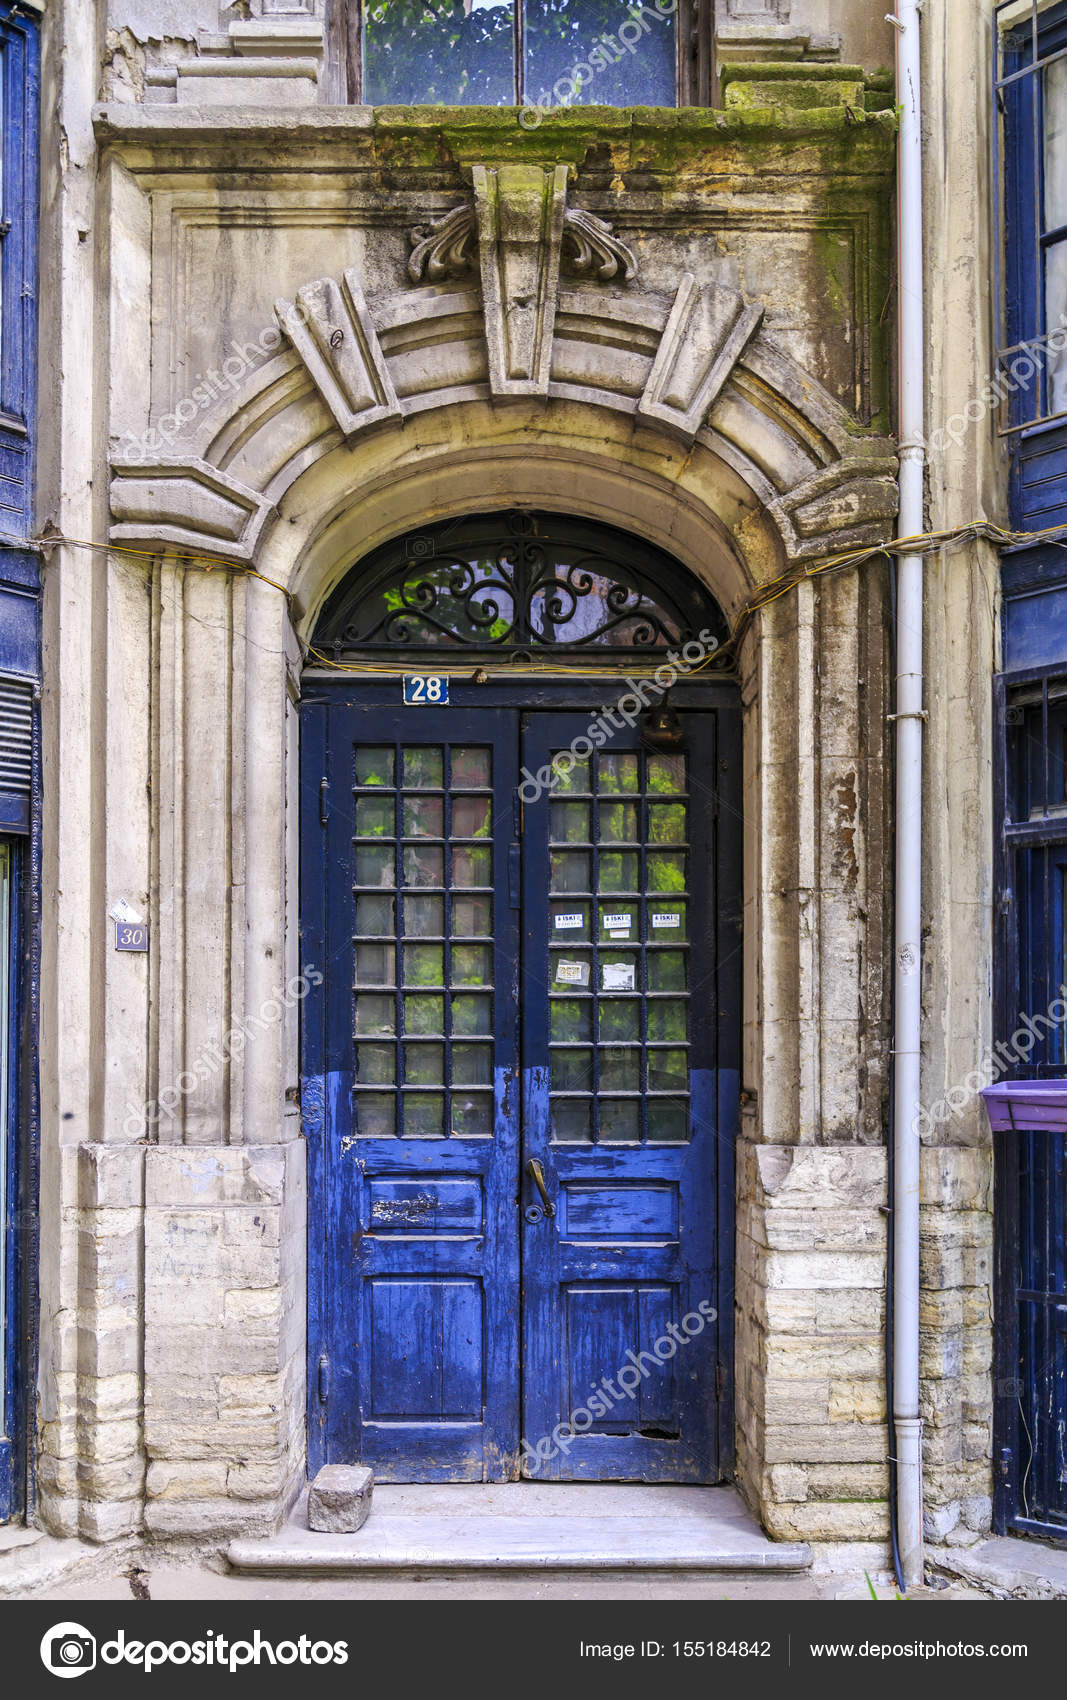 Architectural detail old ornate door u2014 Stock Photo & Architectural detail old ornate door u2013 Stock Editorial Photo ...